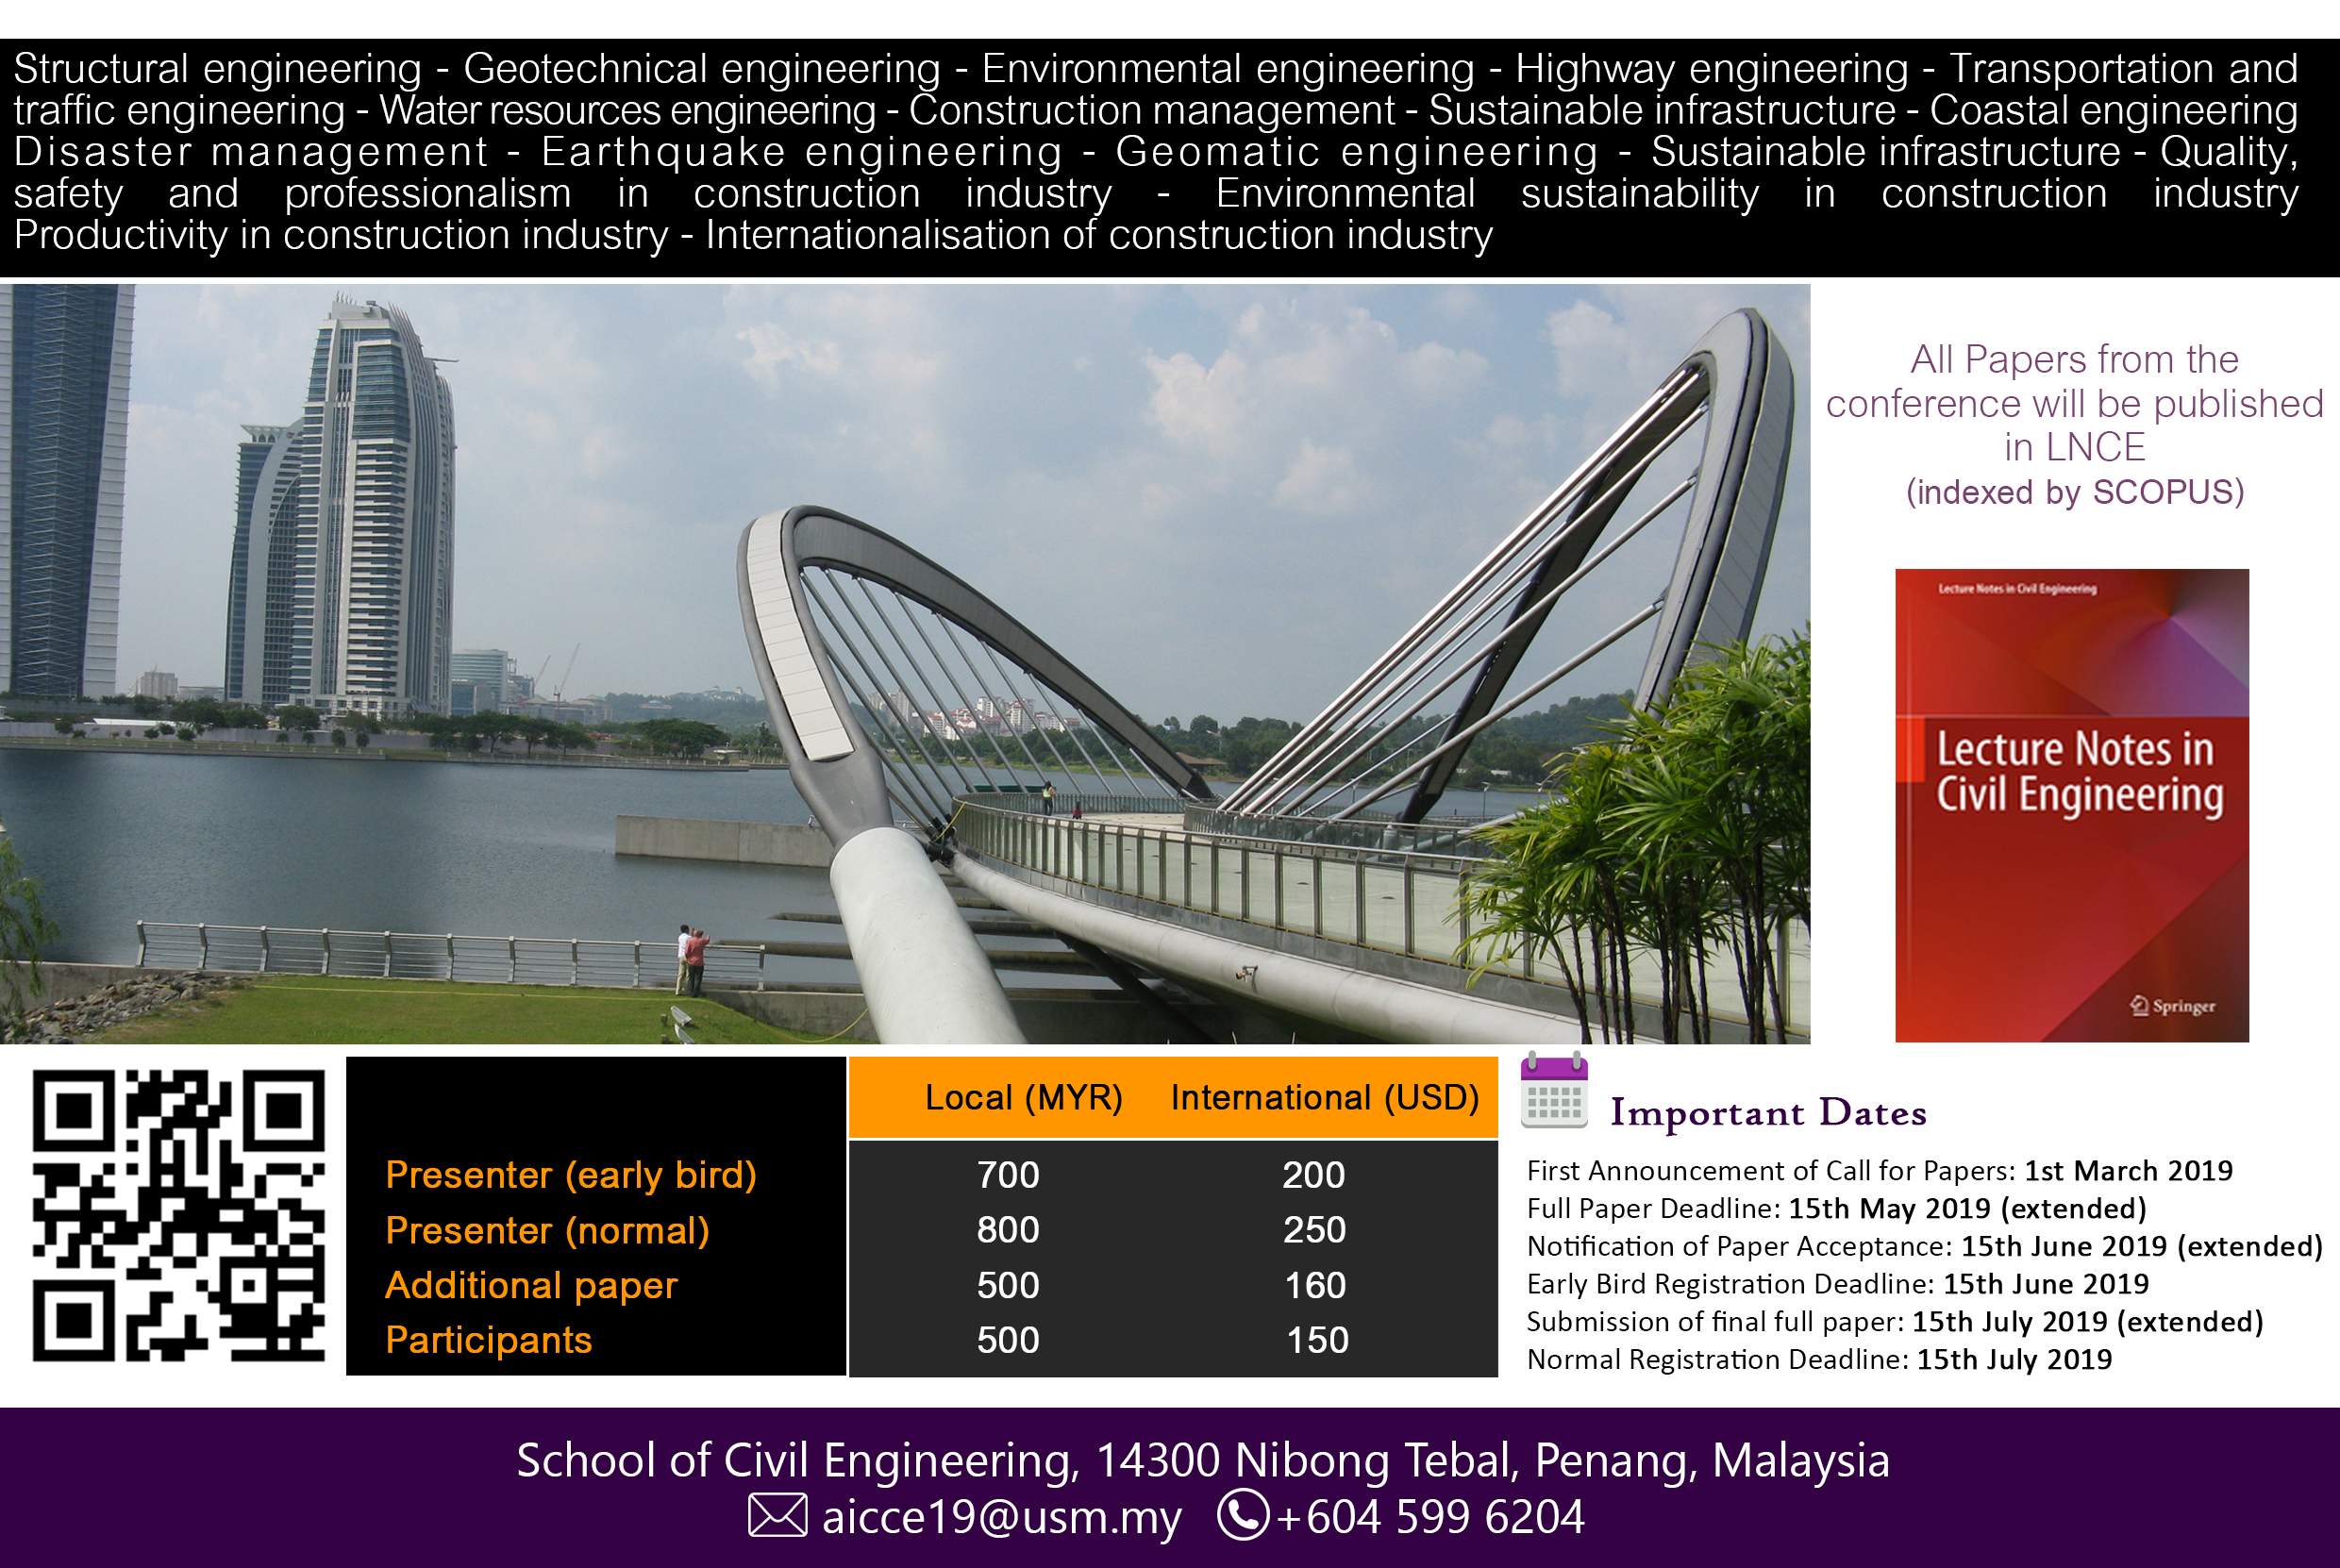 School of Civil Engineering USM - AWAM International